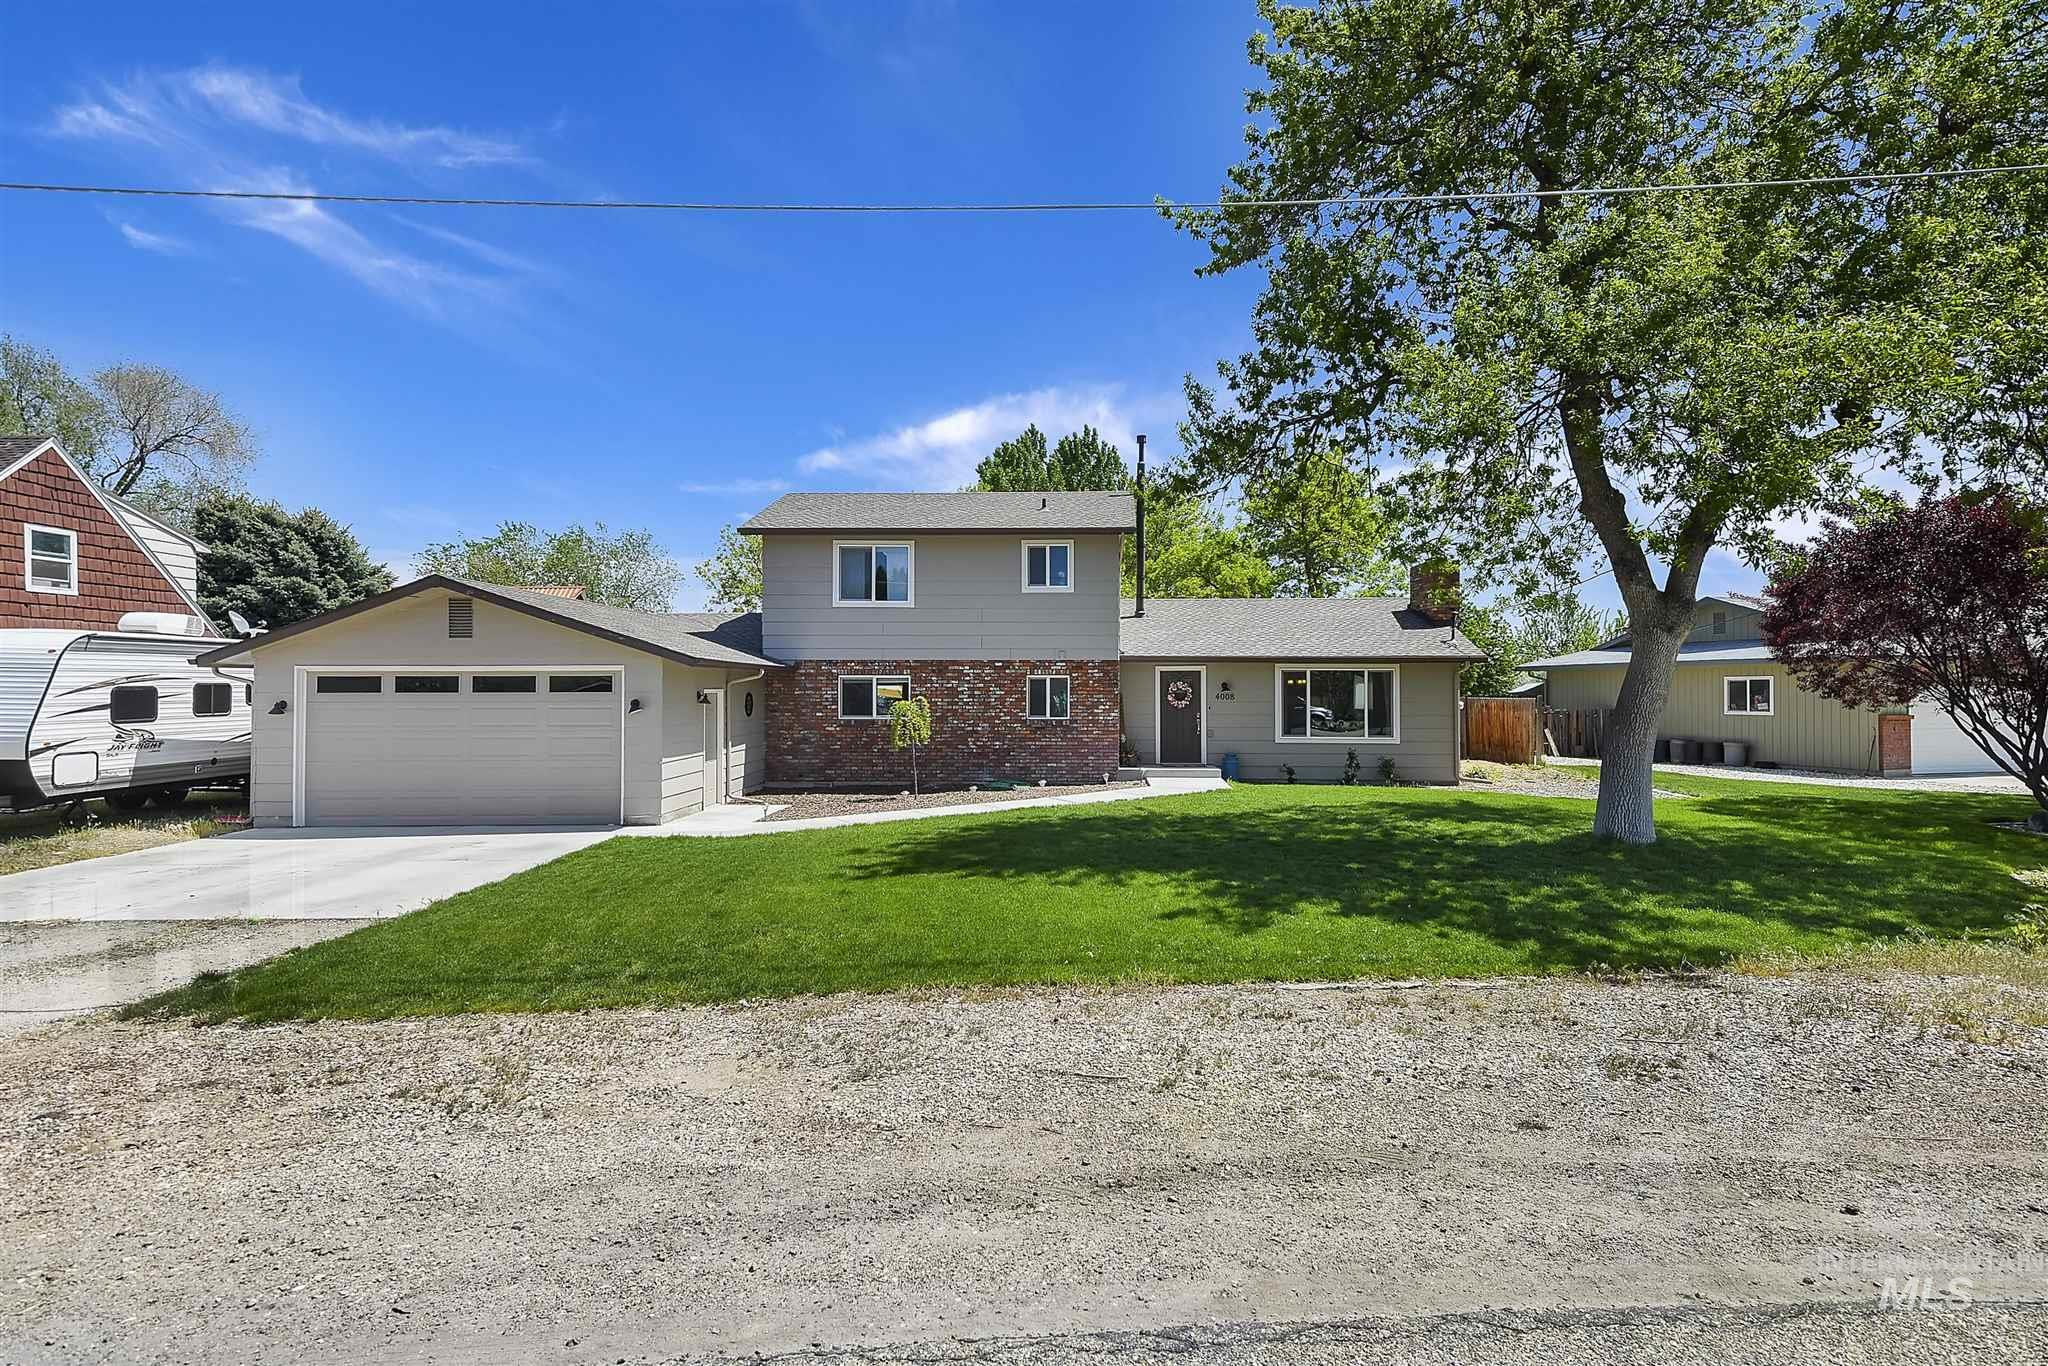 4008 CHICAGO Property Photo - Nampa, ID real estate listing